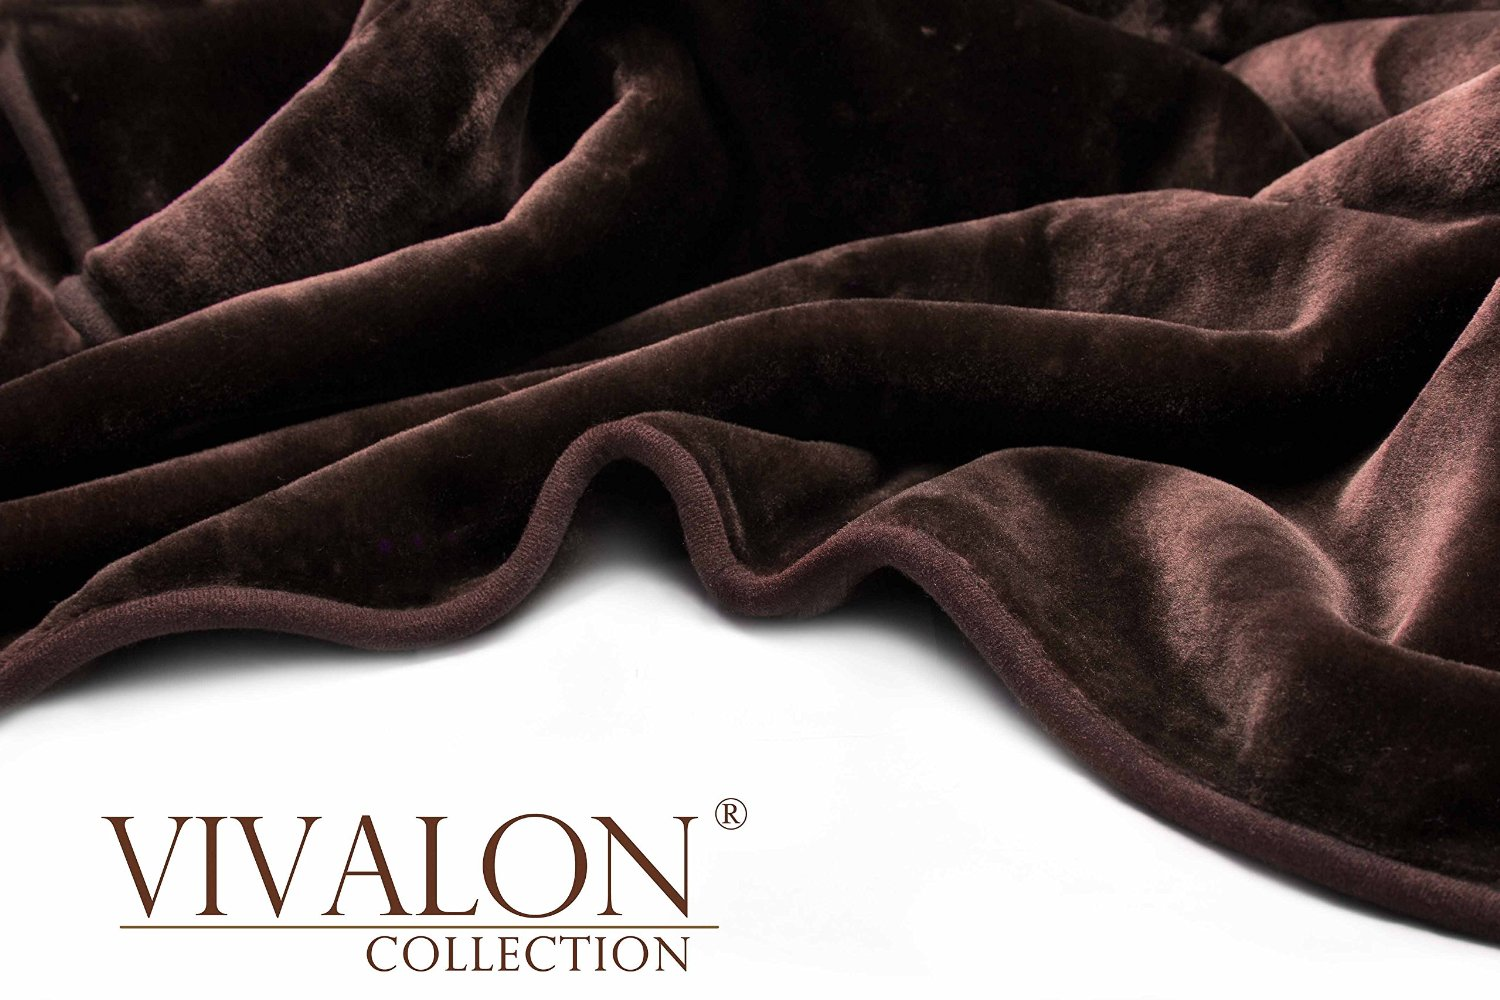 VIVALON Solid Color Ultra Silky Soft Heavy Duty Quality Korean Mink Reversbile Blanket 8 lbs Queen Chocolate Brown